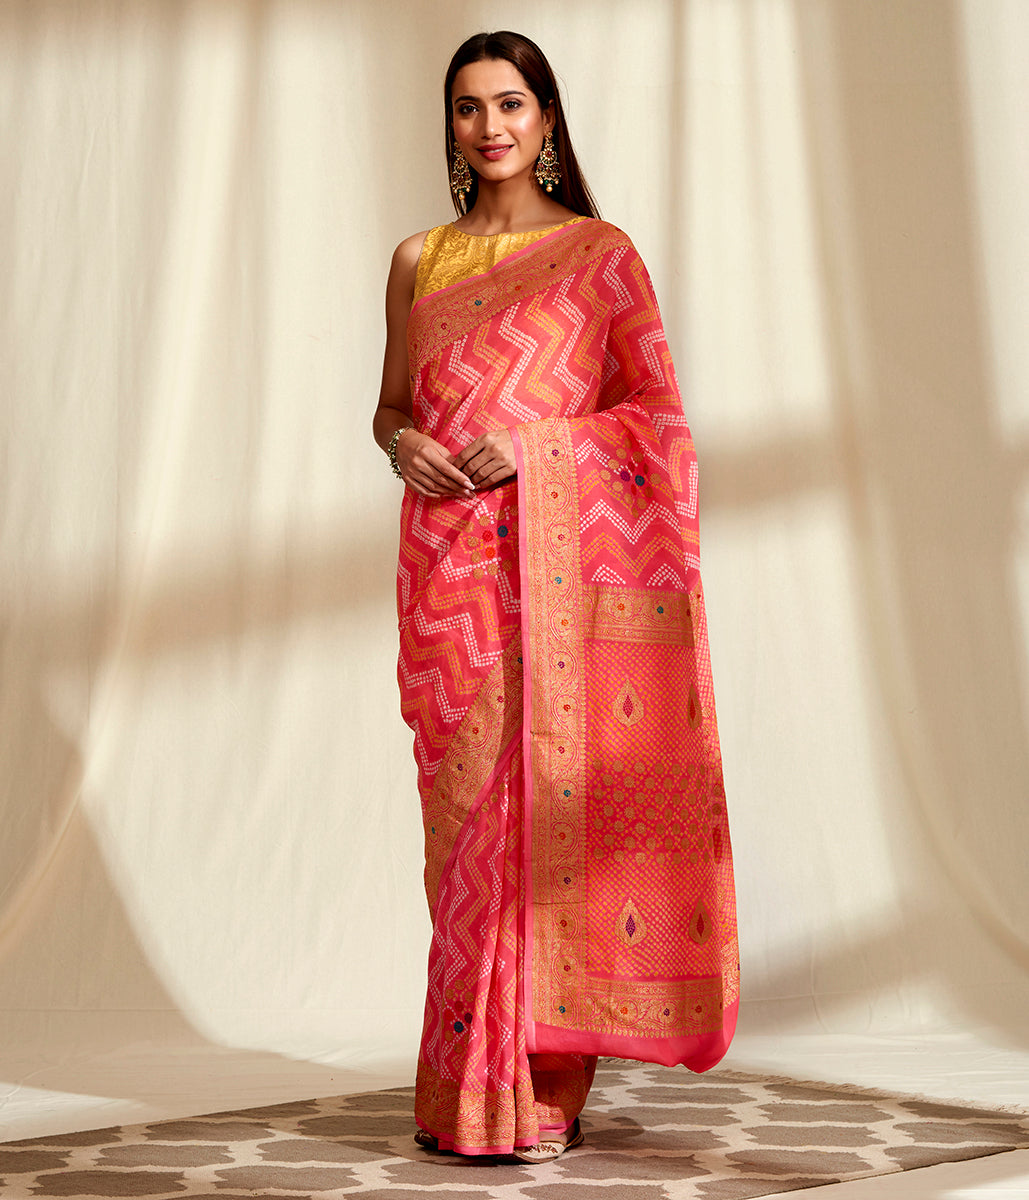 Handwoven Banarasi Bandhej  Saree in Peach with Meenakari